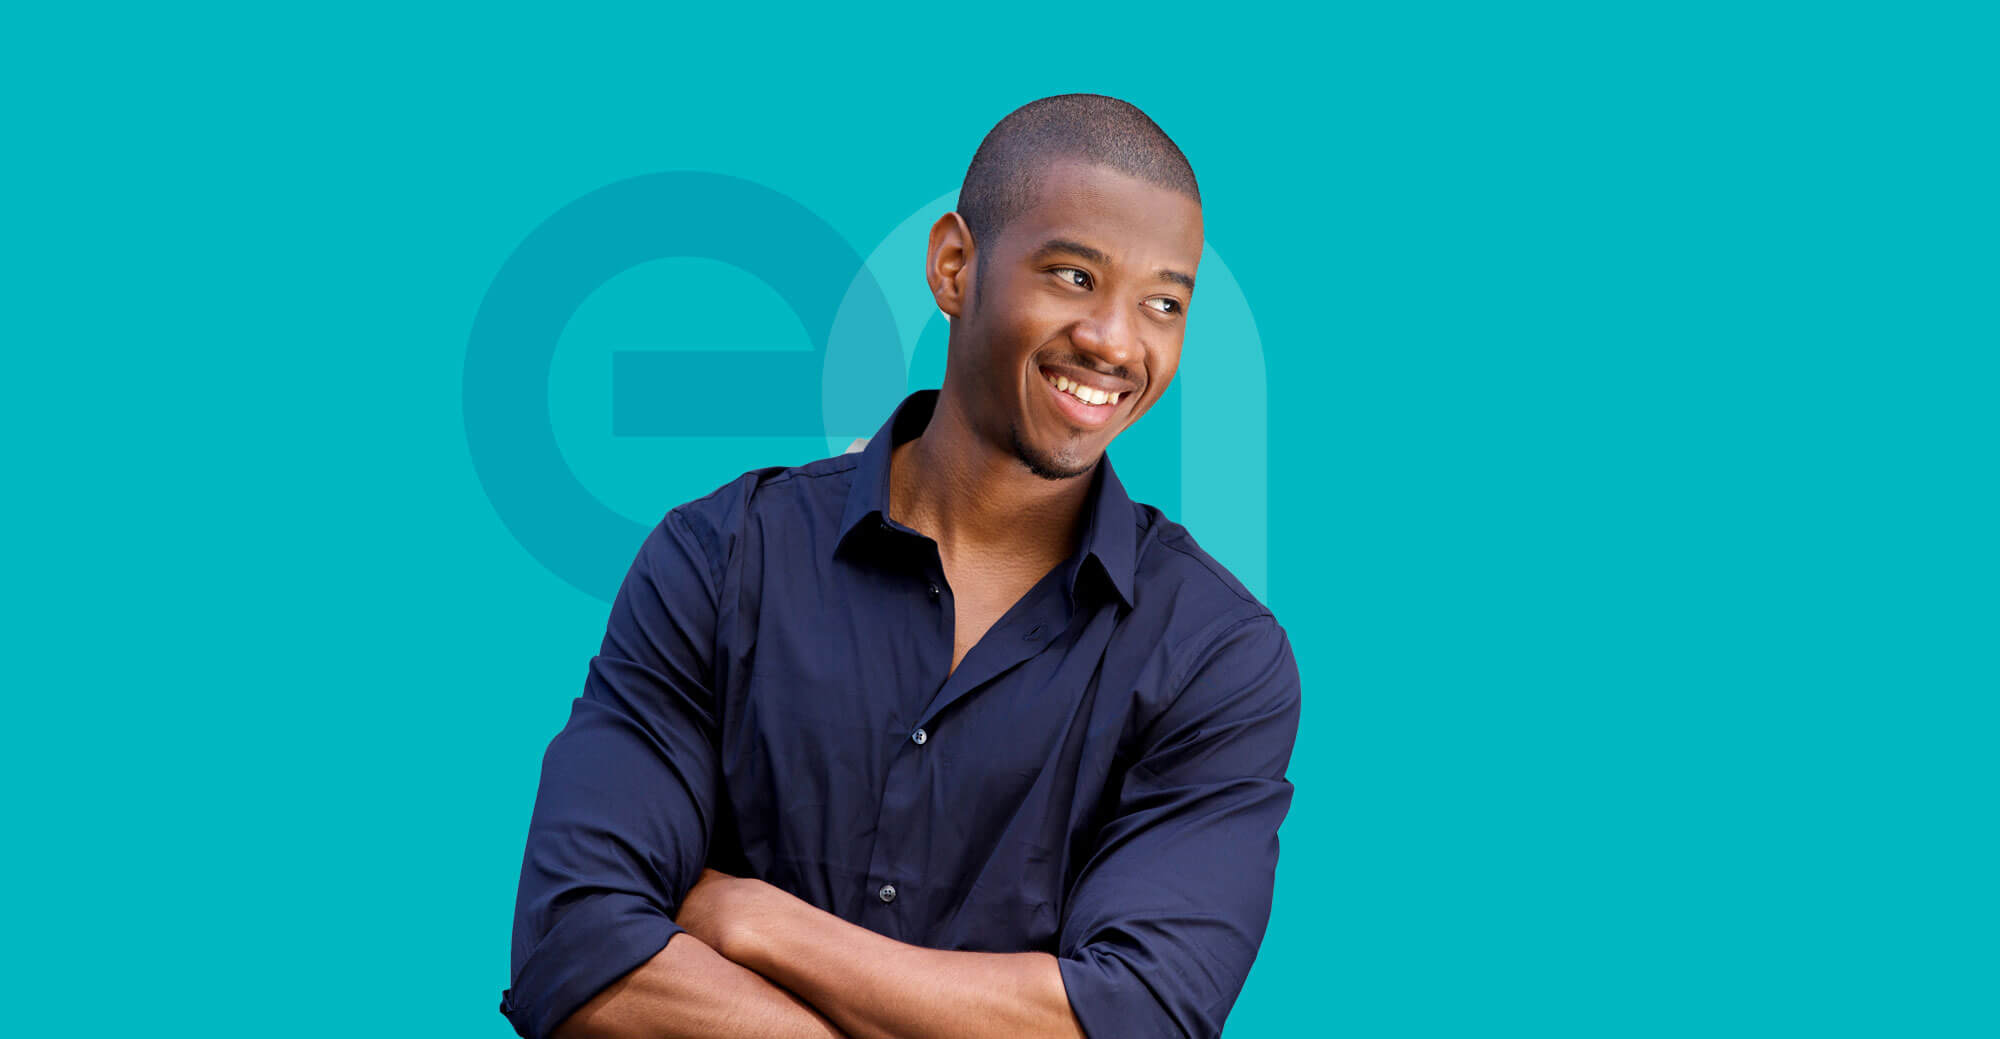 Business man in shirt smiling with EA logo